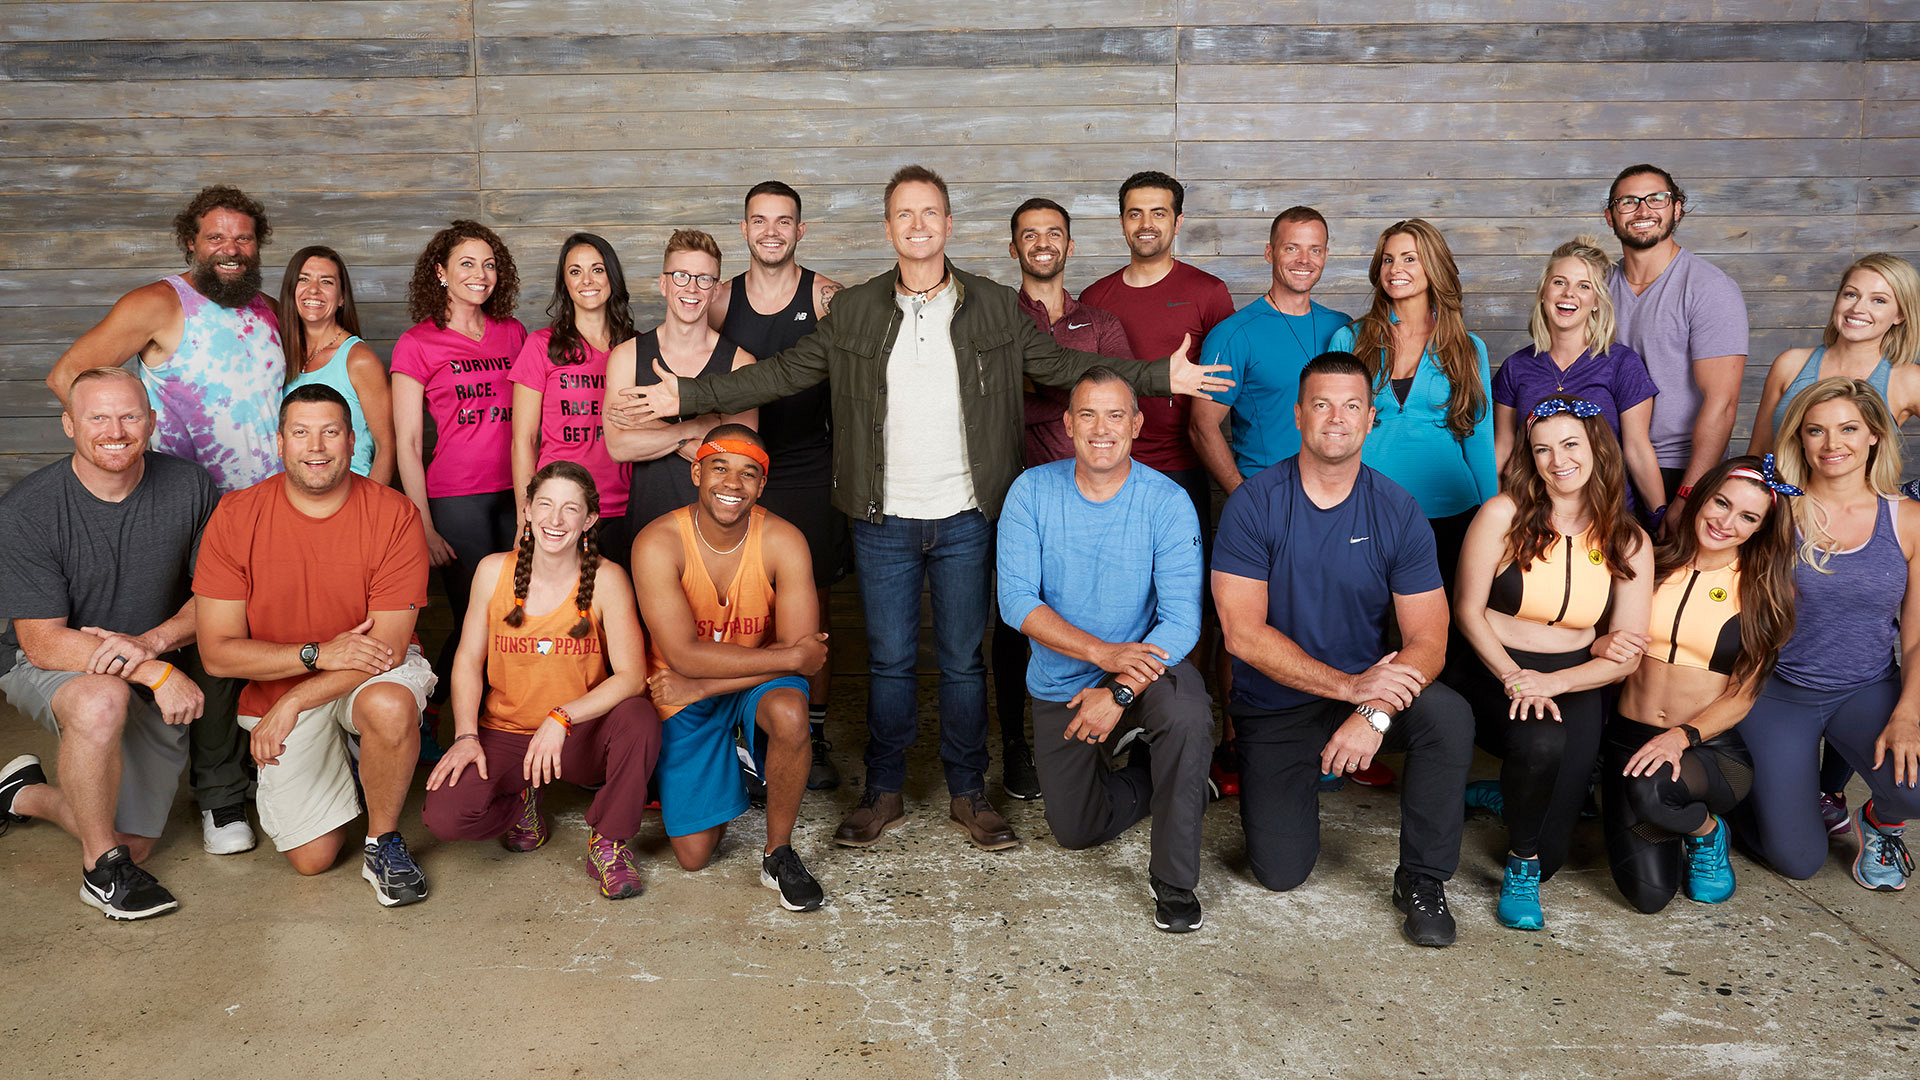 It's a reality showdown on an all-new season of The Amazing Race, premiering Wednesday, Apr. 17 at 9/8c.